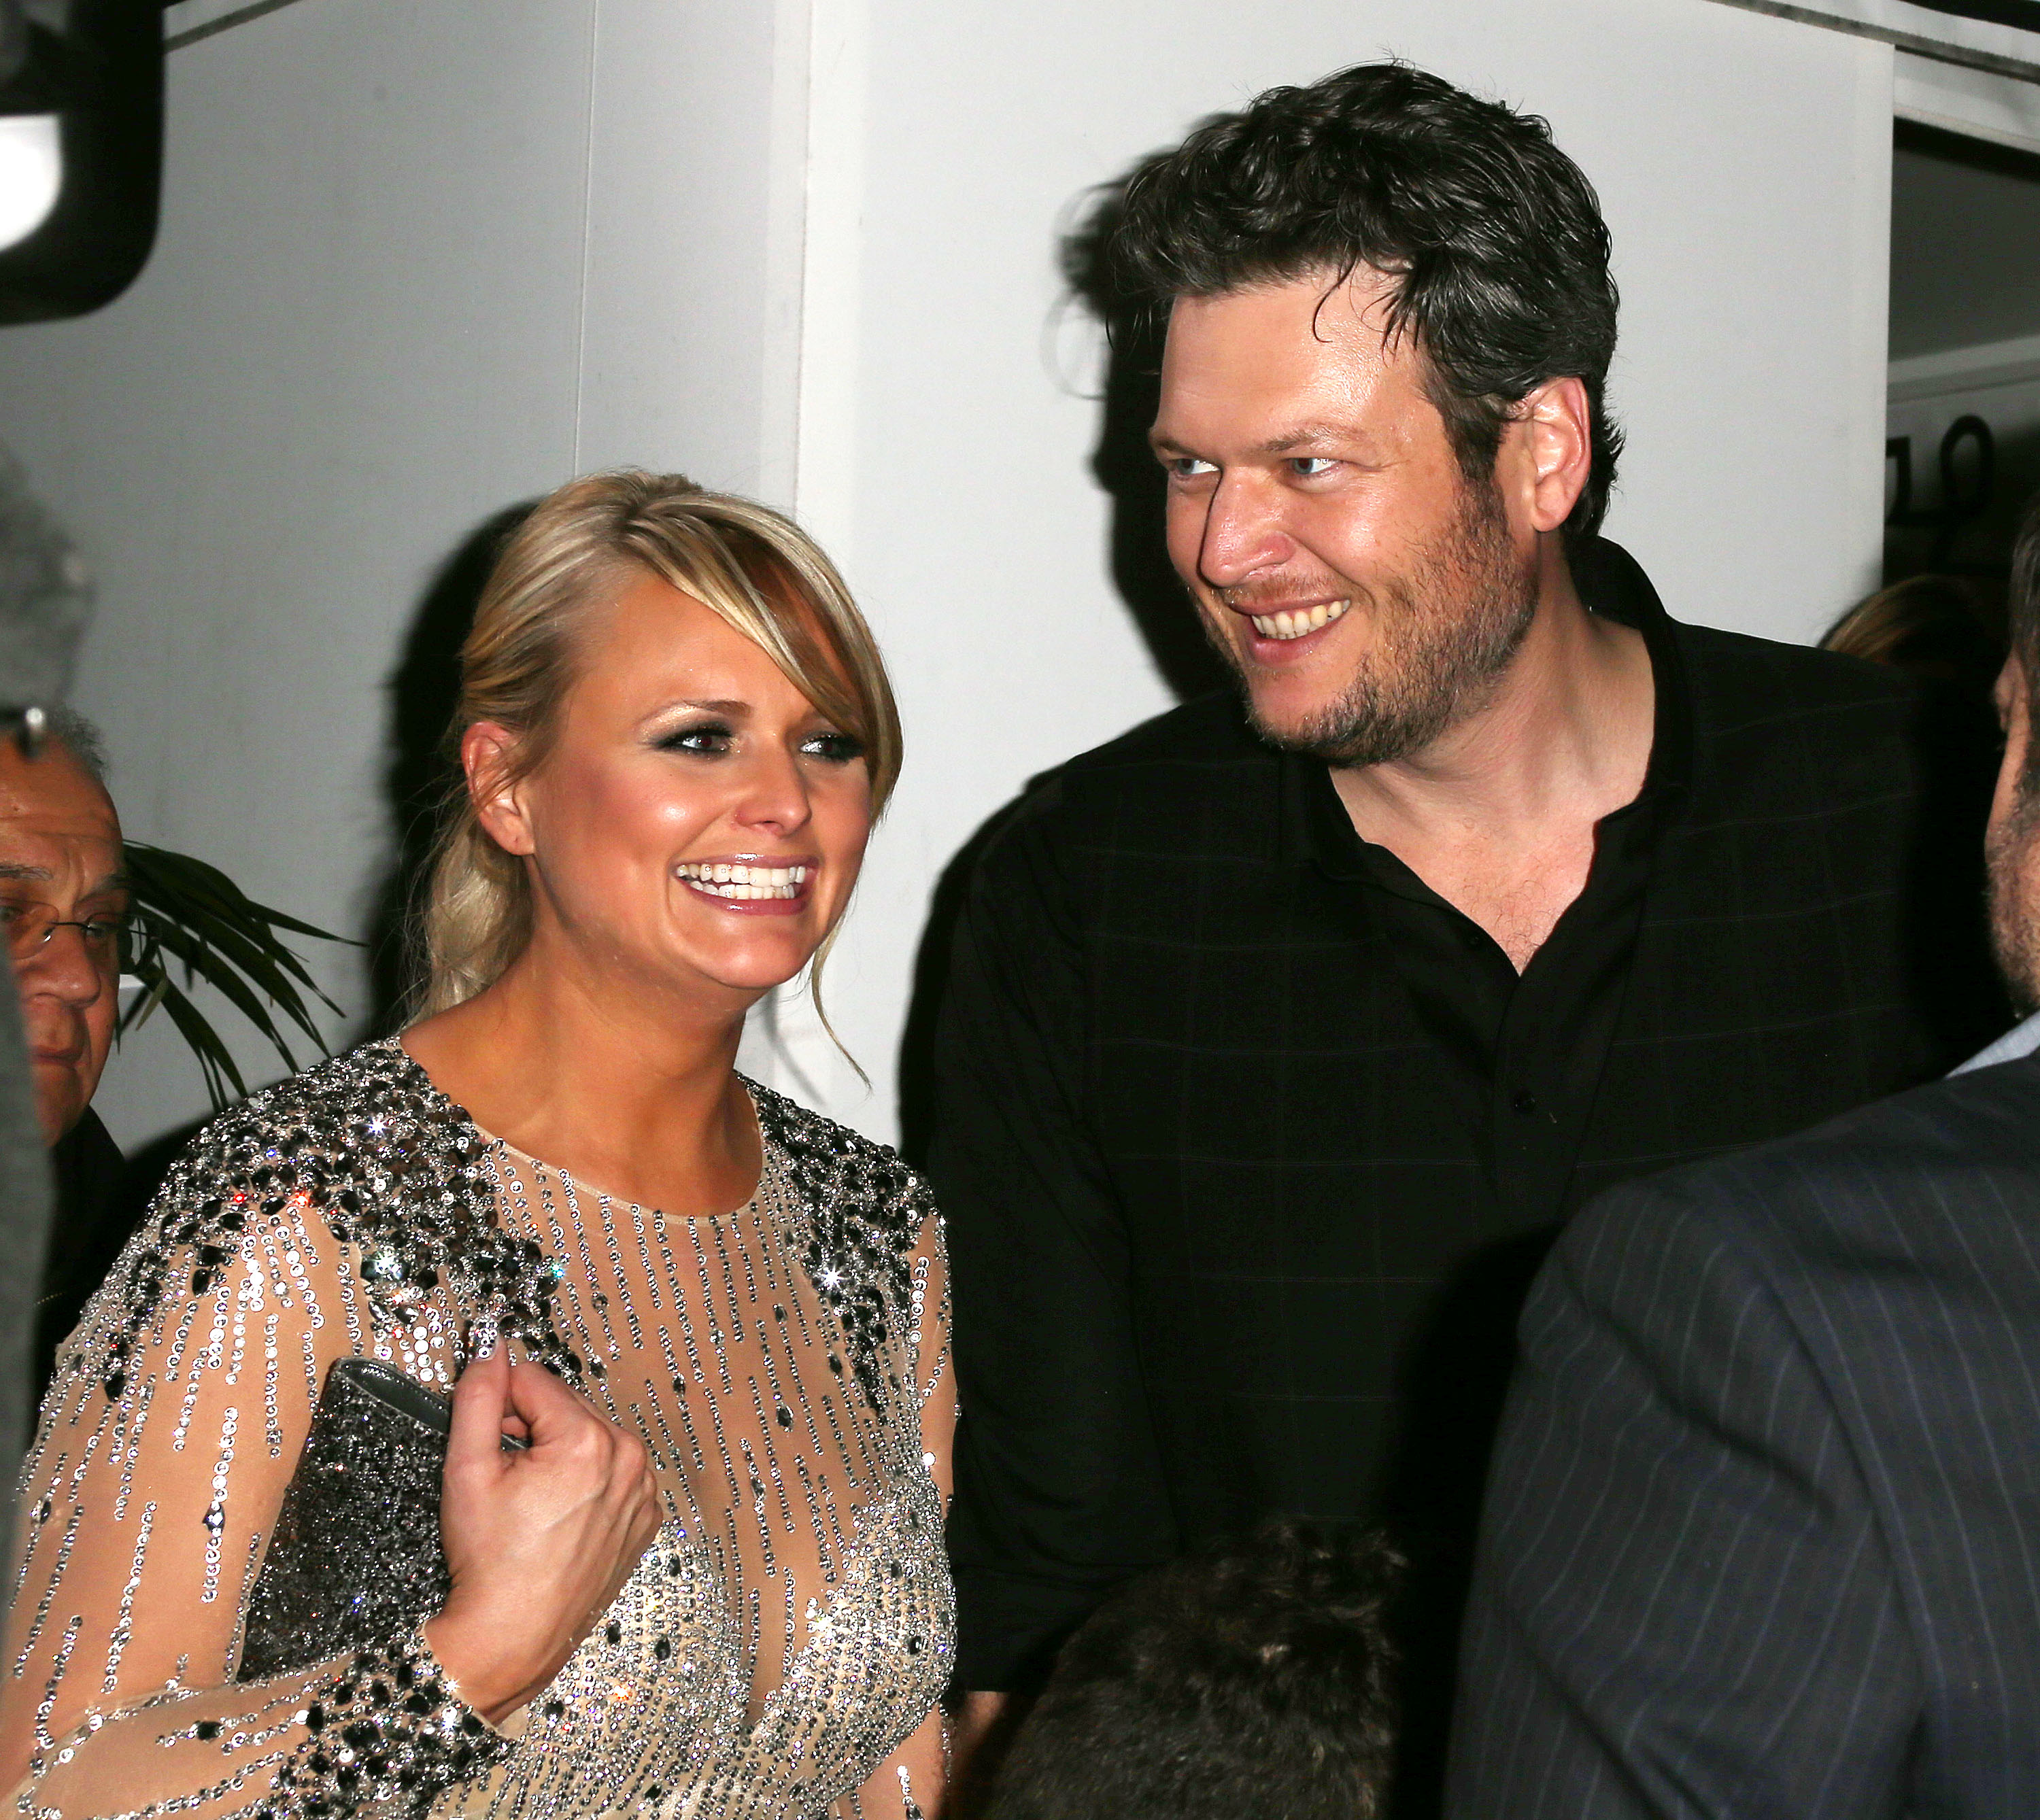 Recording artists Miranda Lambert (L) and Blake Shelton attend Warner Music Group's 2013 Grammy Celebration at Chateau Marmont's Bar Marmont on February 10, 2013 in Hollywood, California. (Photo by Frederick M. Brown/Getty Images)